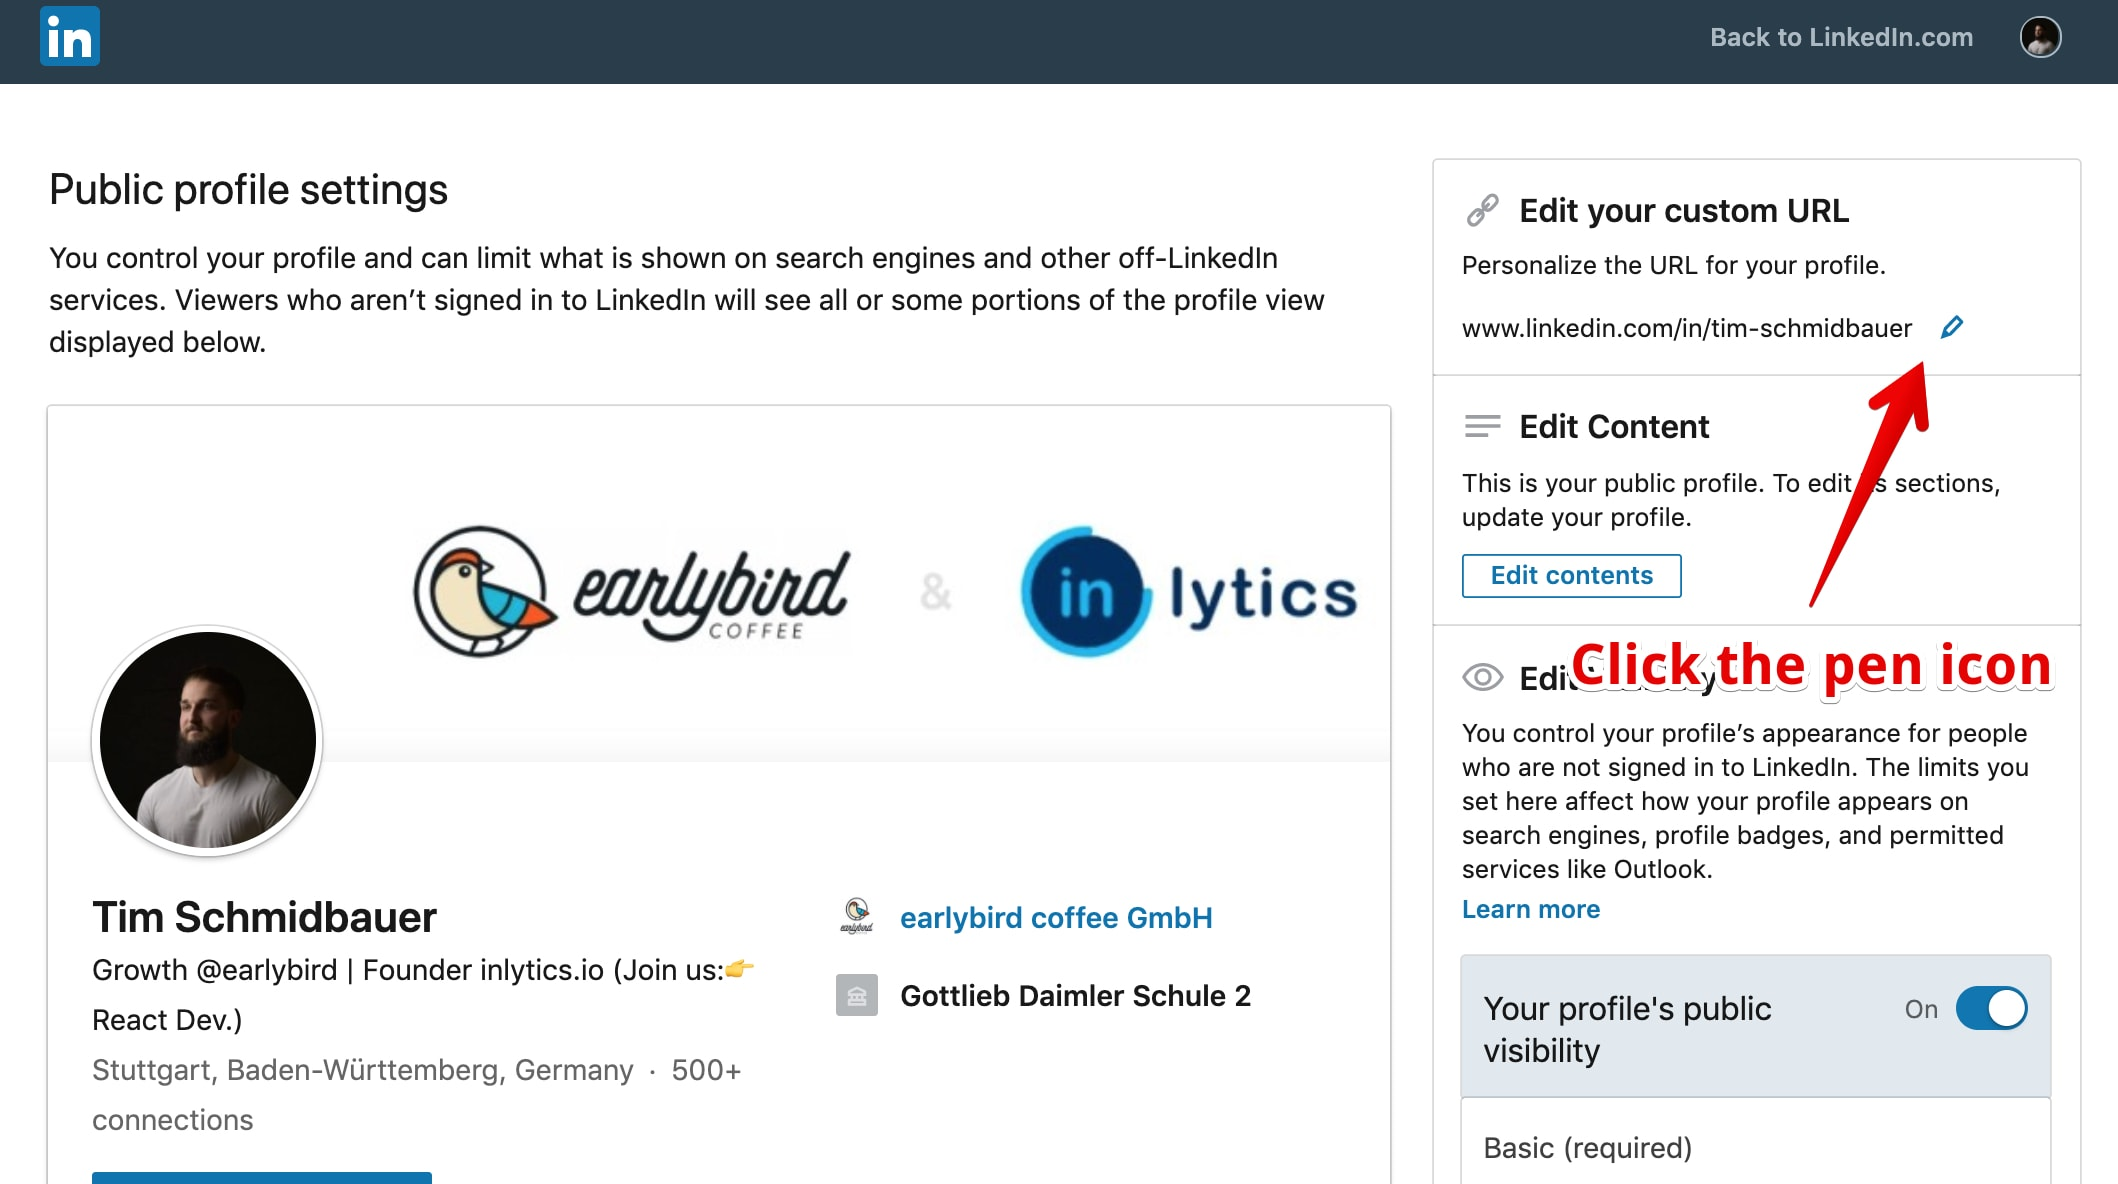 LinkedIn profile url customization - edit url by clicking the pen icon